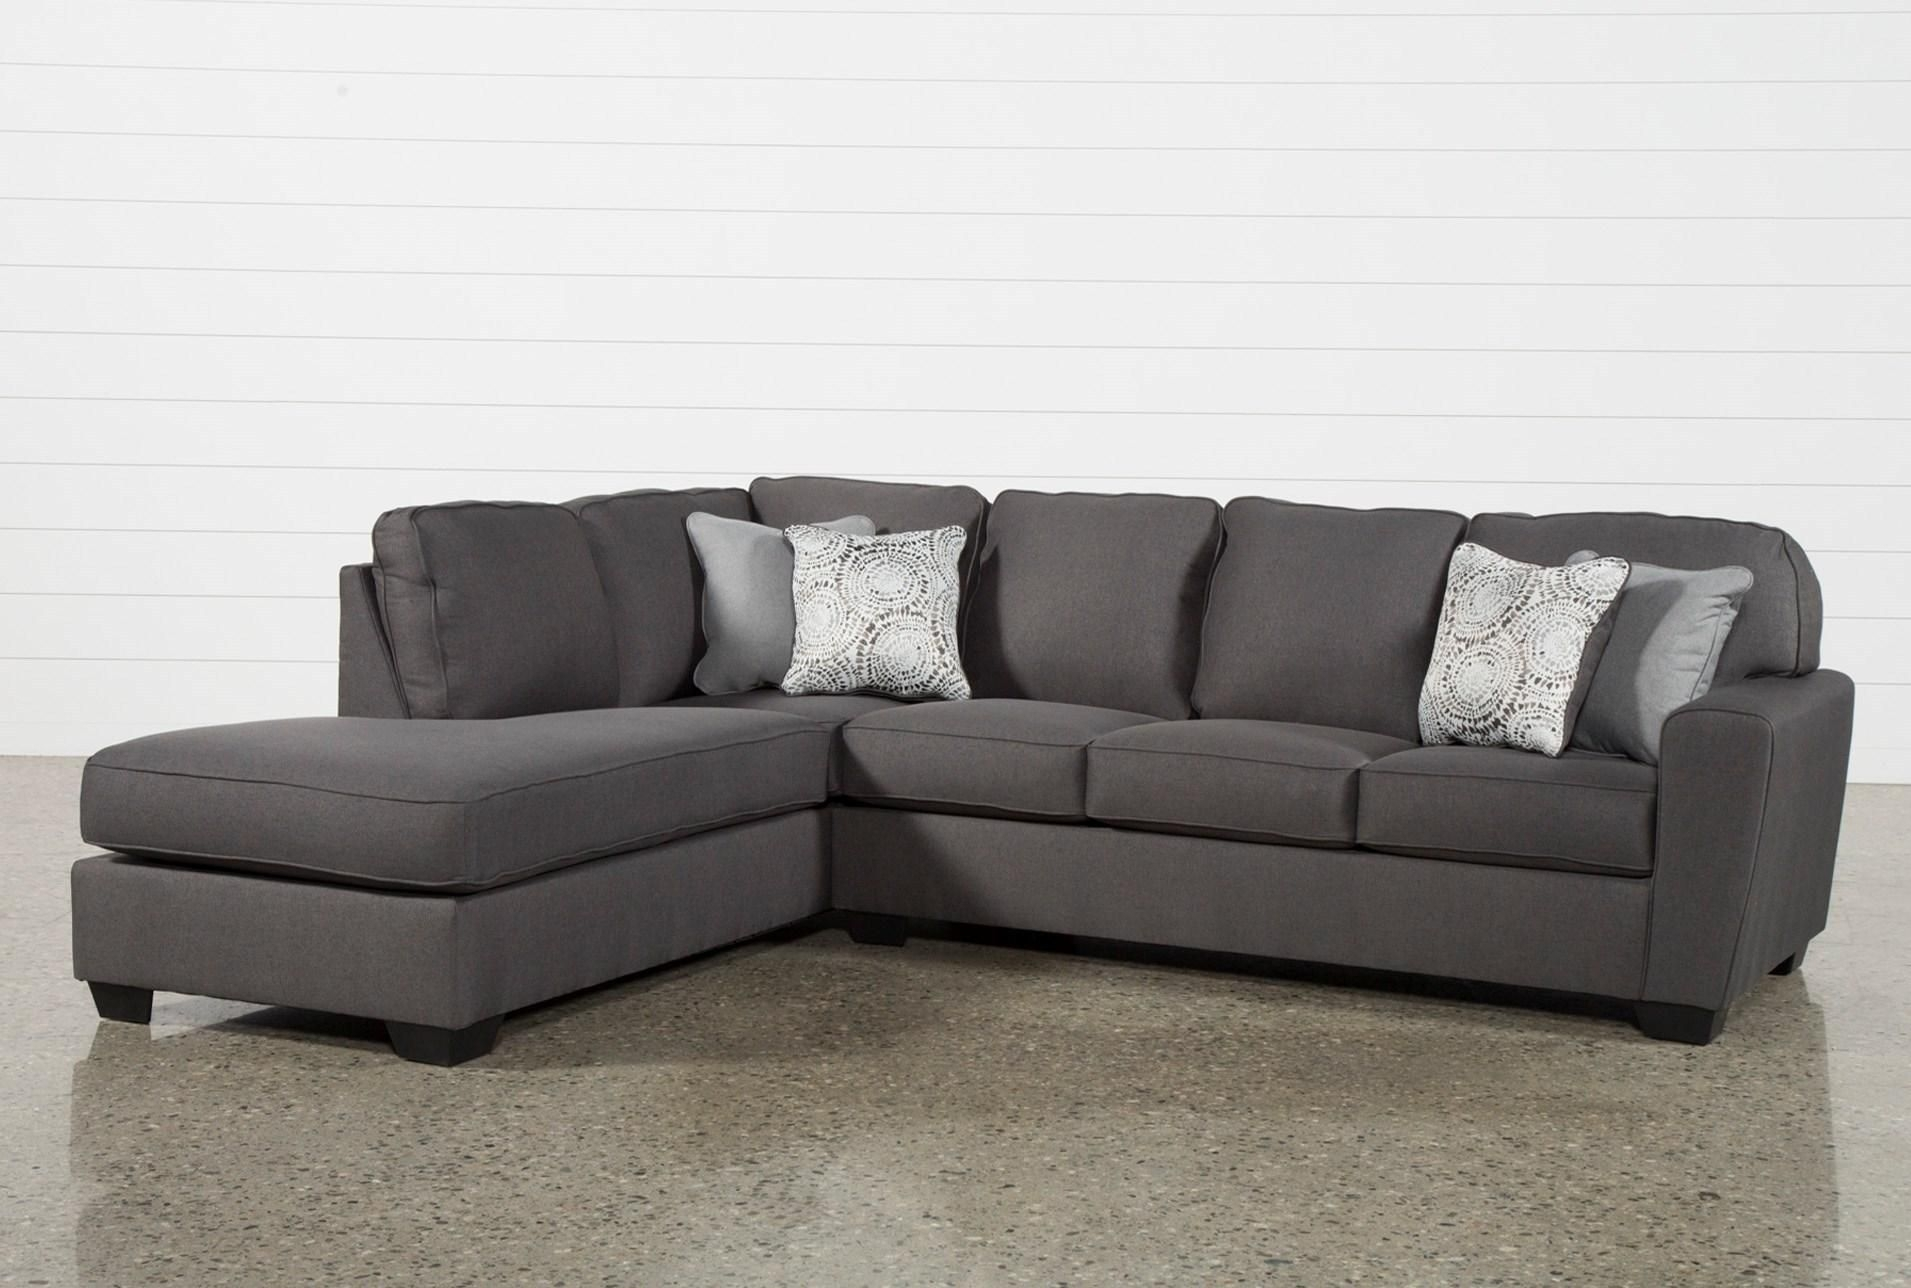 Mcdade Graphite 2 Piece Sectional W/laf Chaise | Graphite, Living with Alder 4 Piece Sectionals (Image 23 of 30)